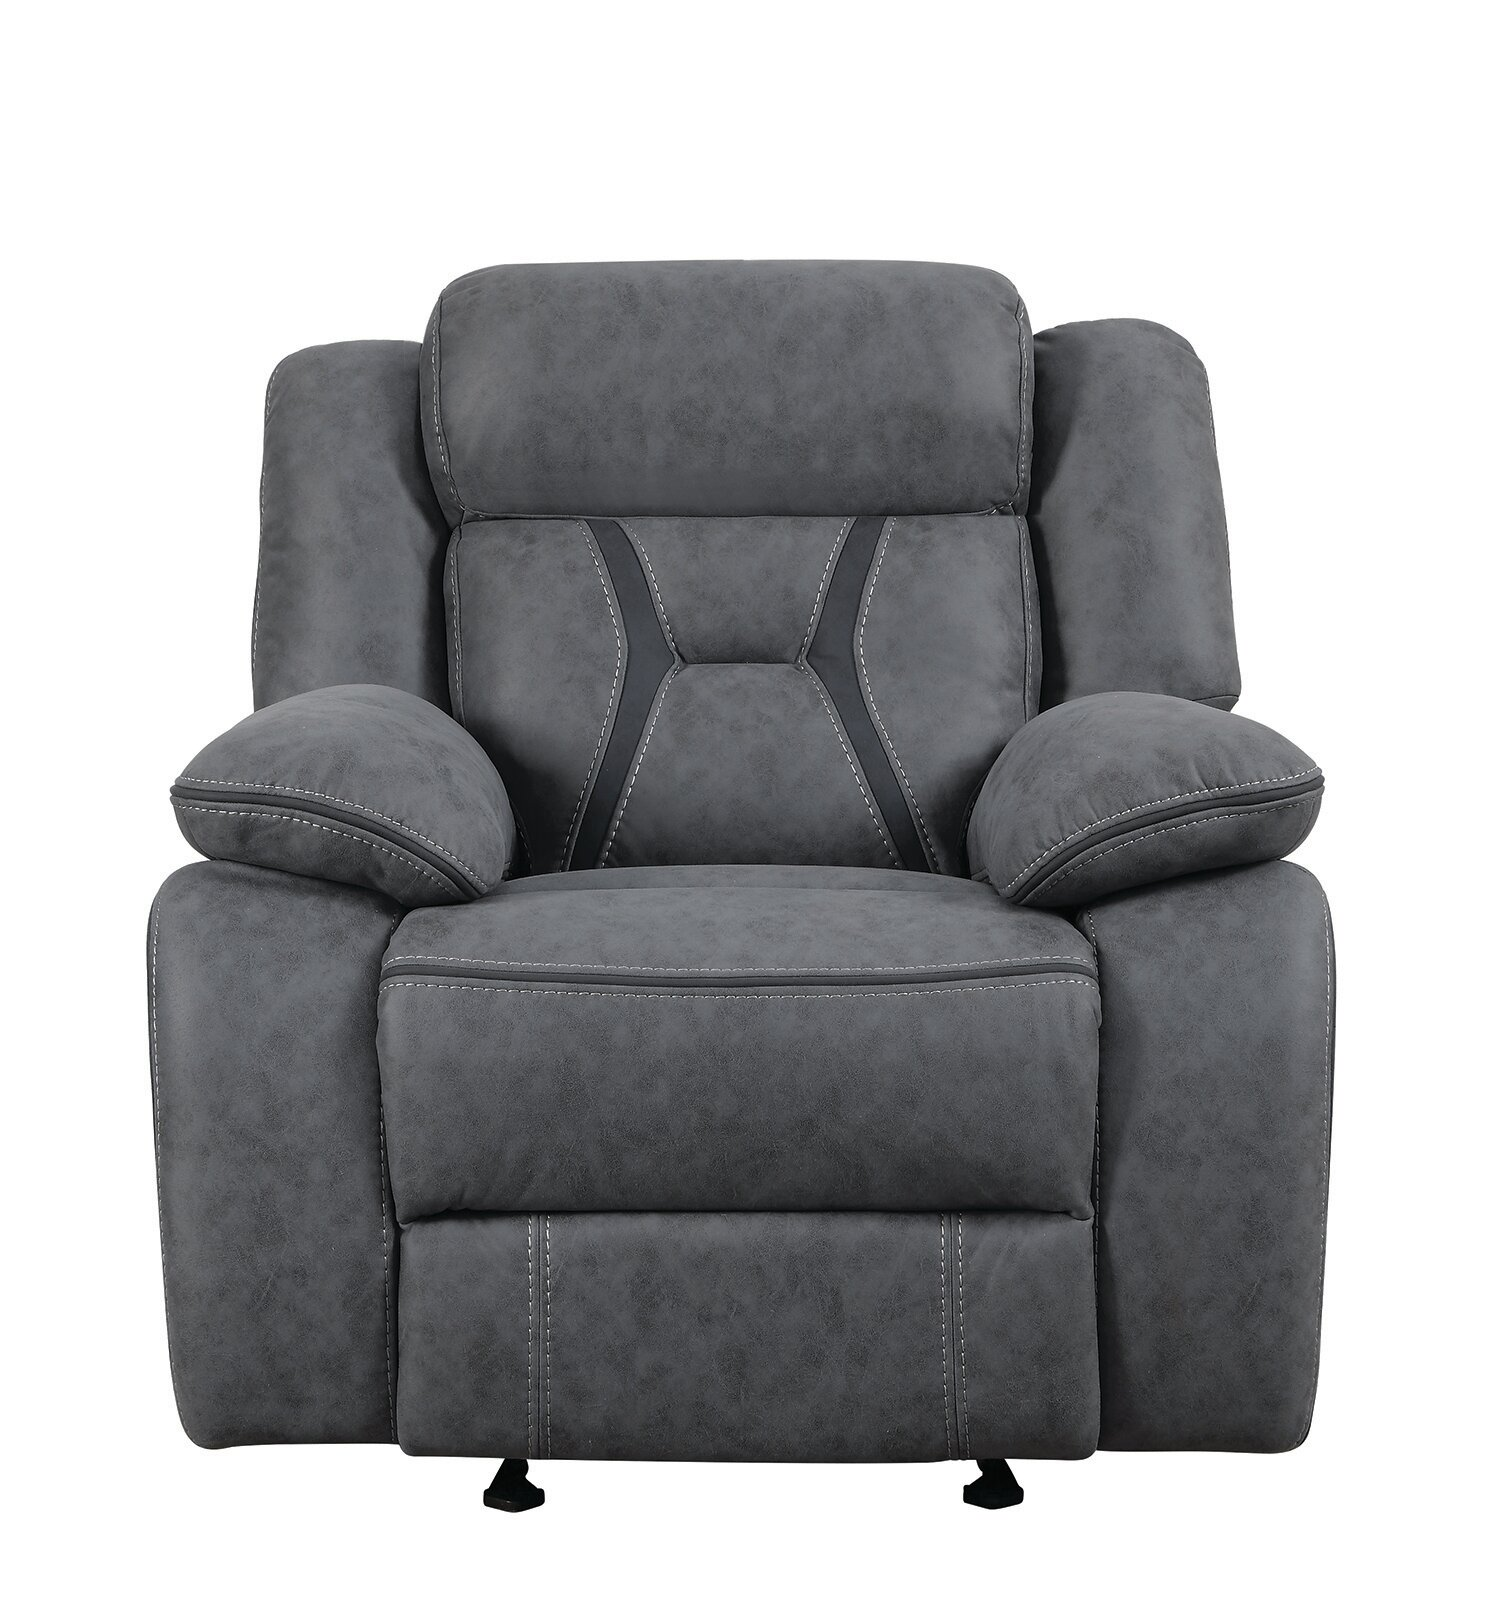 Vincenzo 39'' Manual Glider Recliner